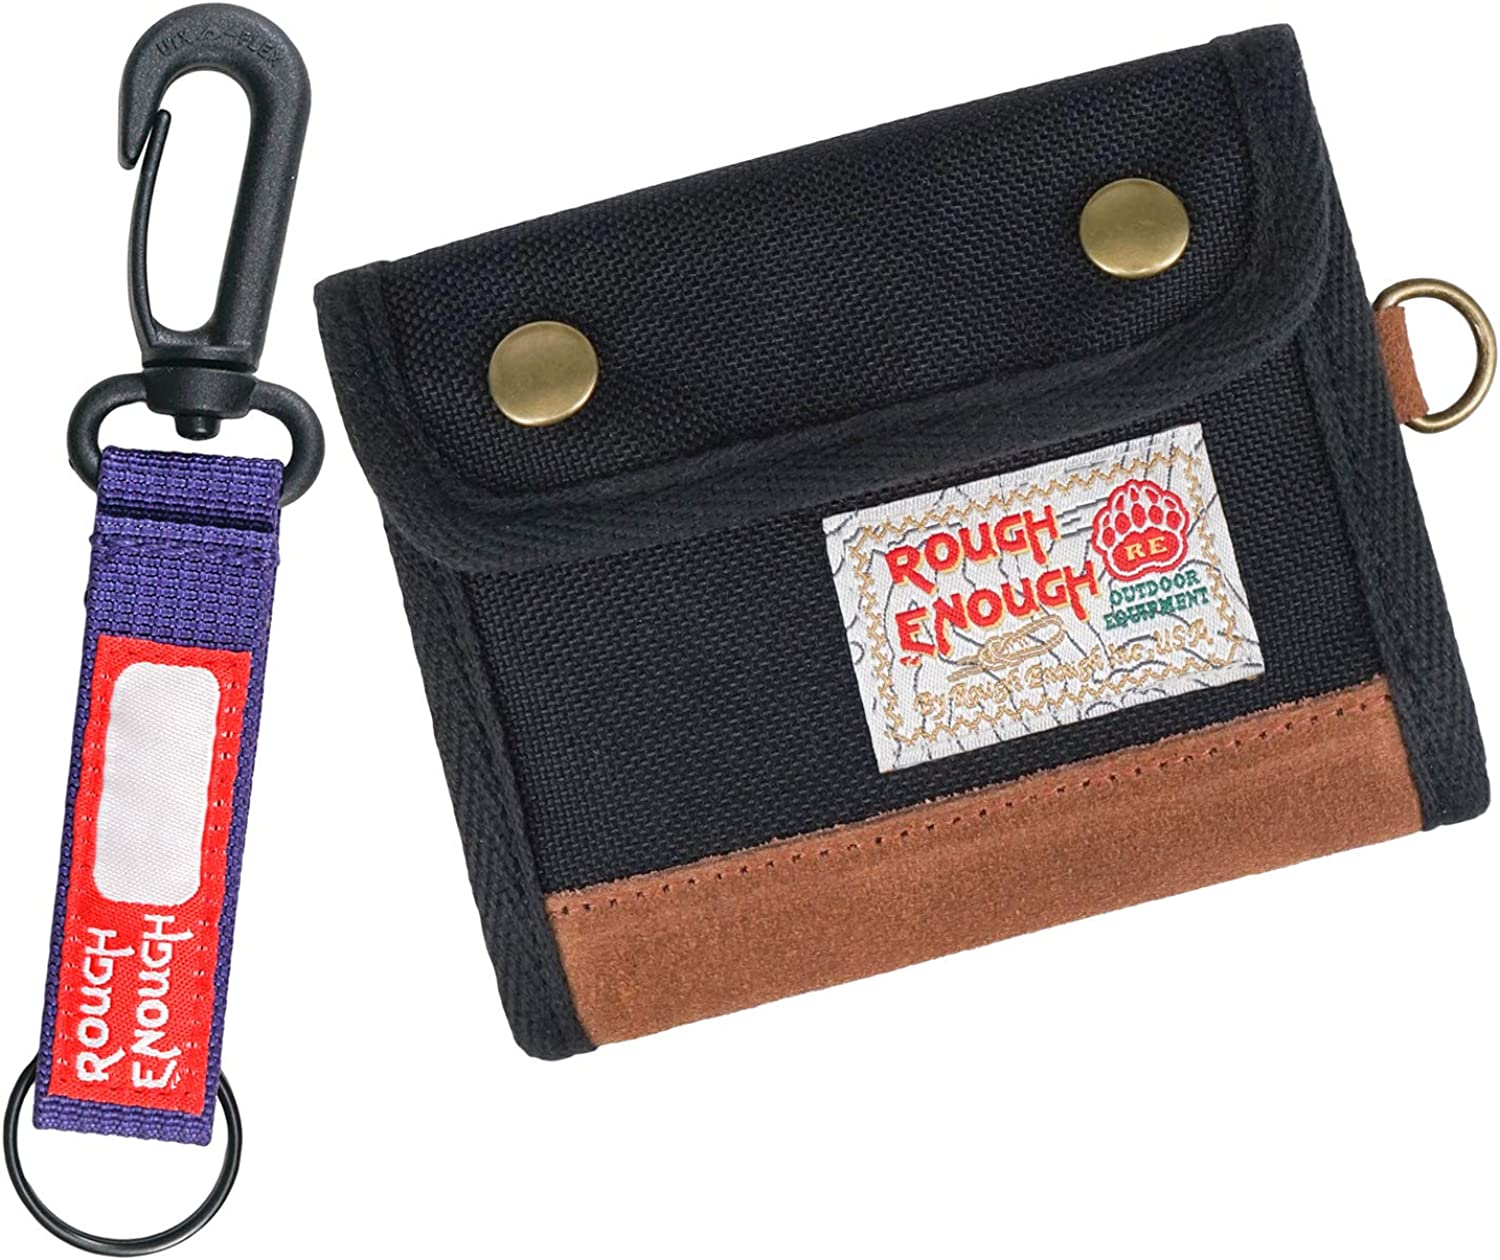 Rough Enough Bifold Kids Wallet for Boys Teen Men Keychain Credit Card Holder in Leather Trims Black Front Pocket Wallet Organizer with Coin Pocket Change Purse Cool Unique Christmas Gifts